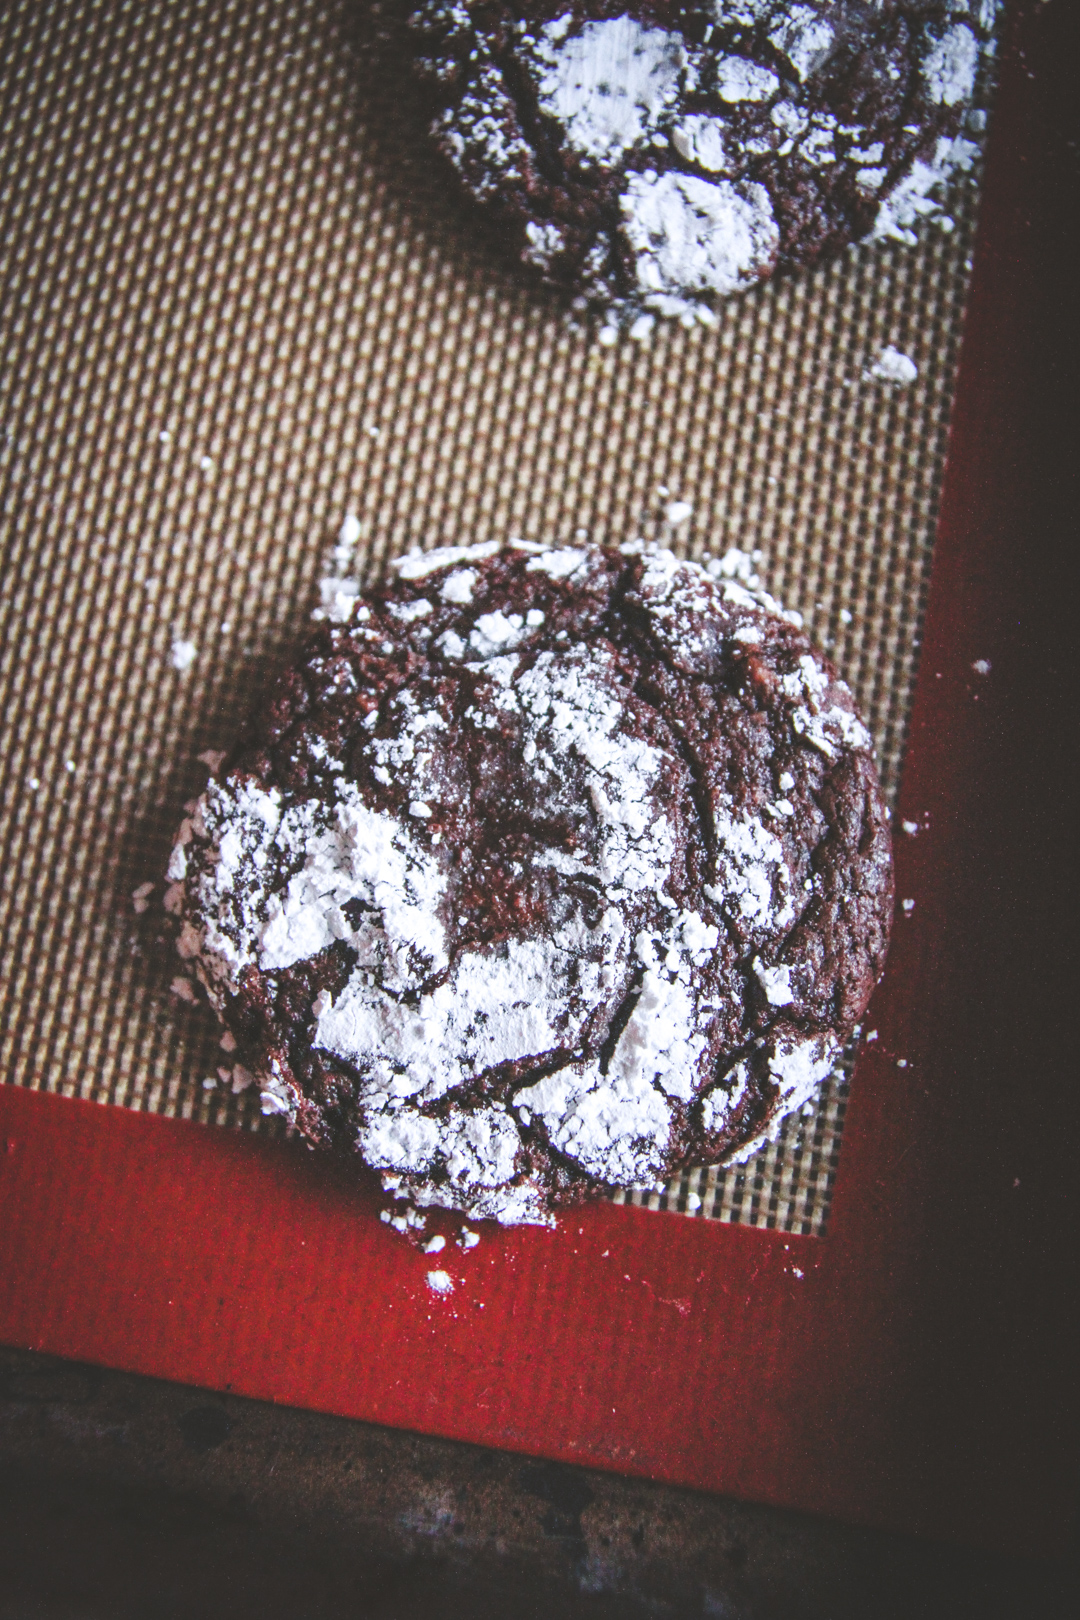 chocolate rolo stuffed crinkle cookie recipe, chocolate caramel filled cookies